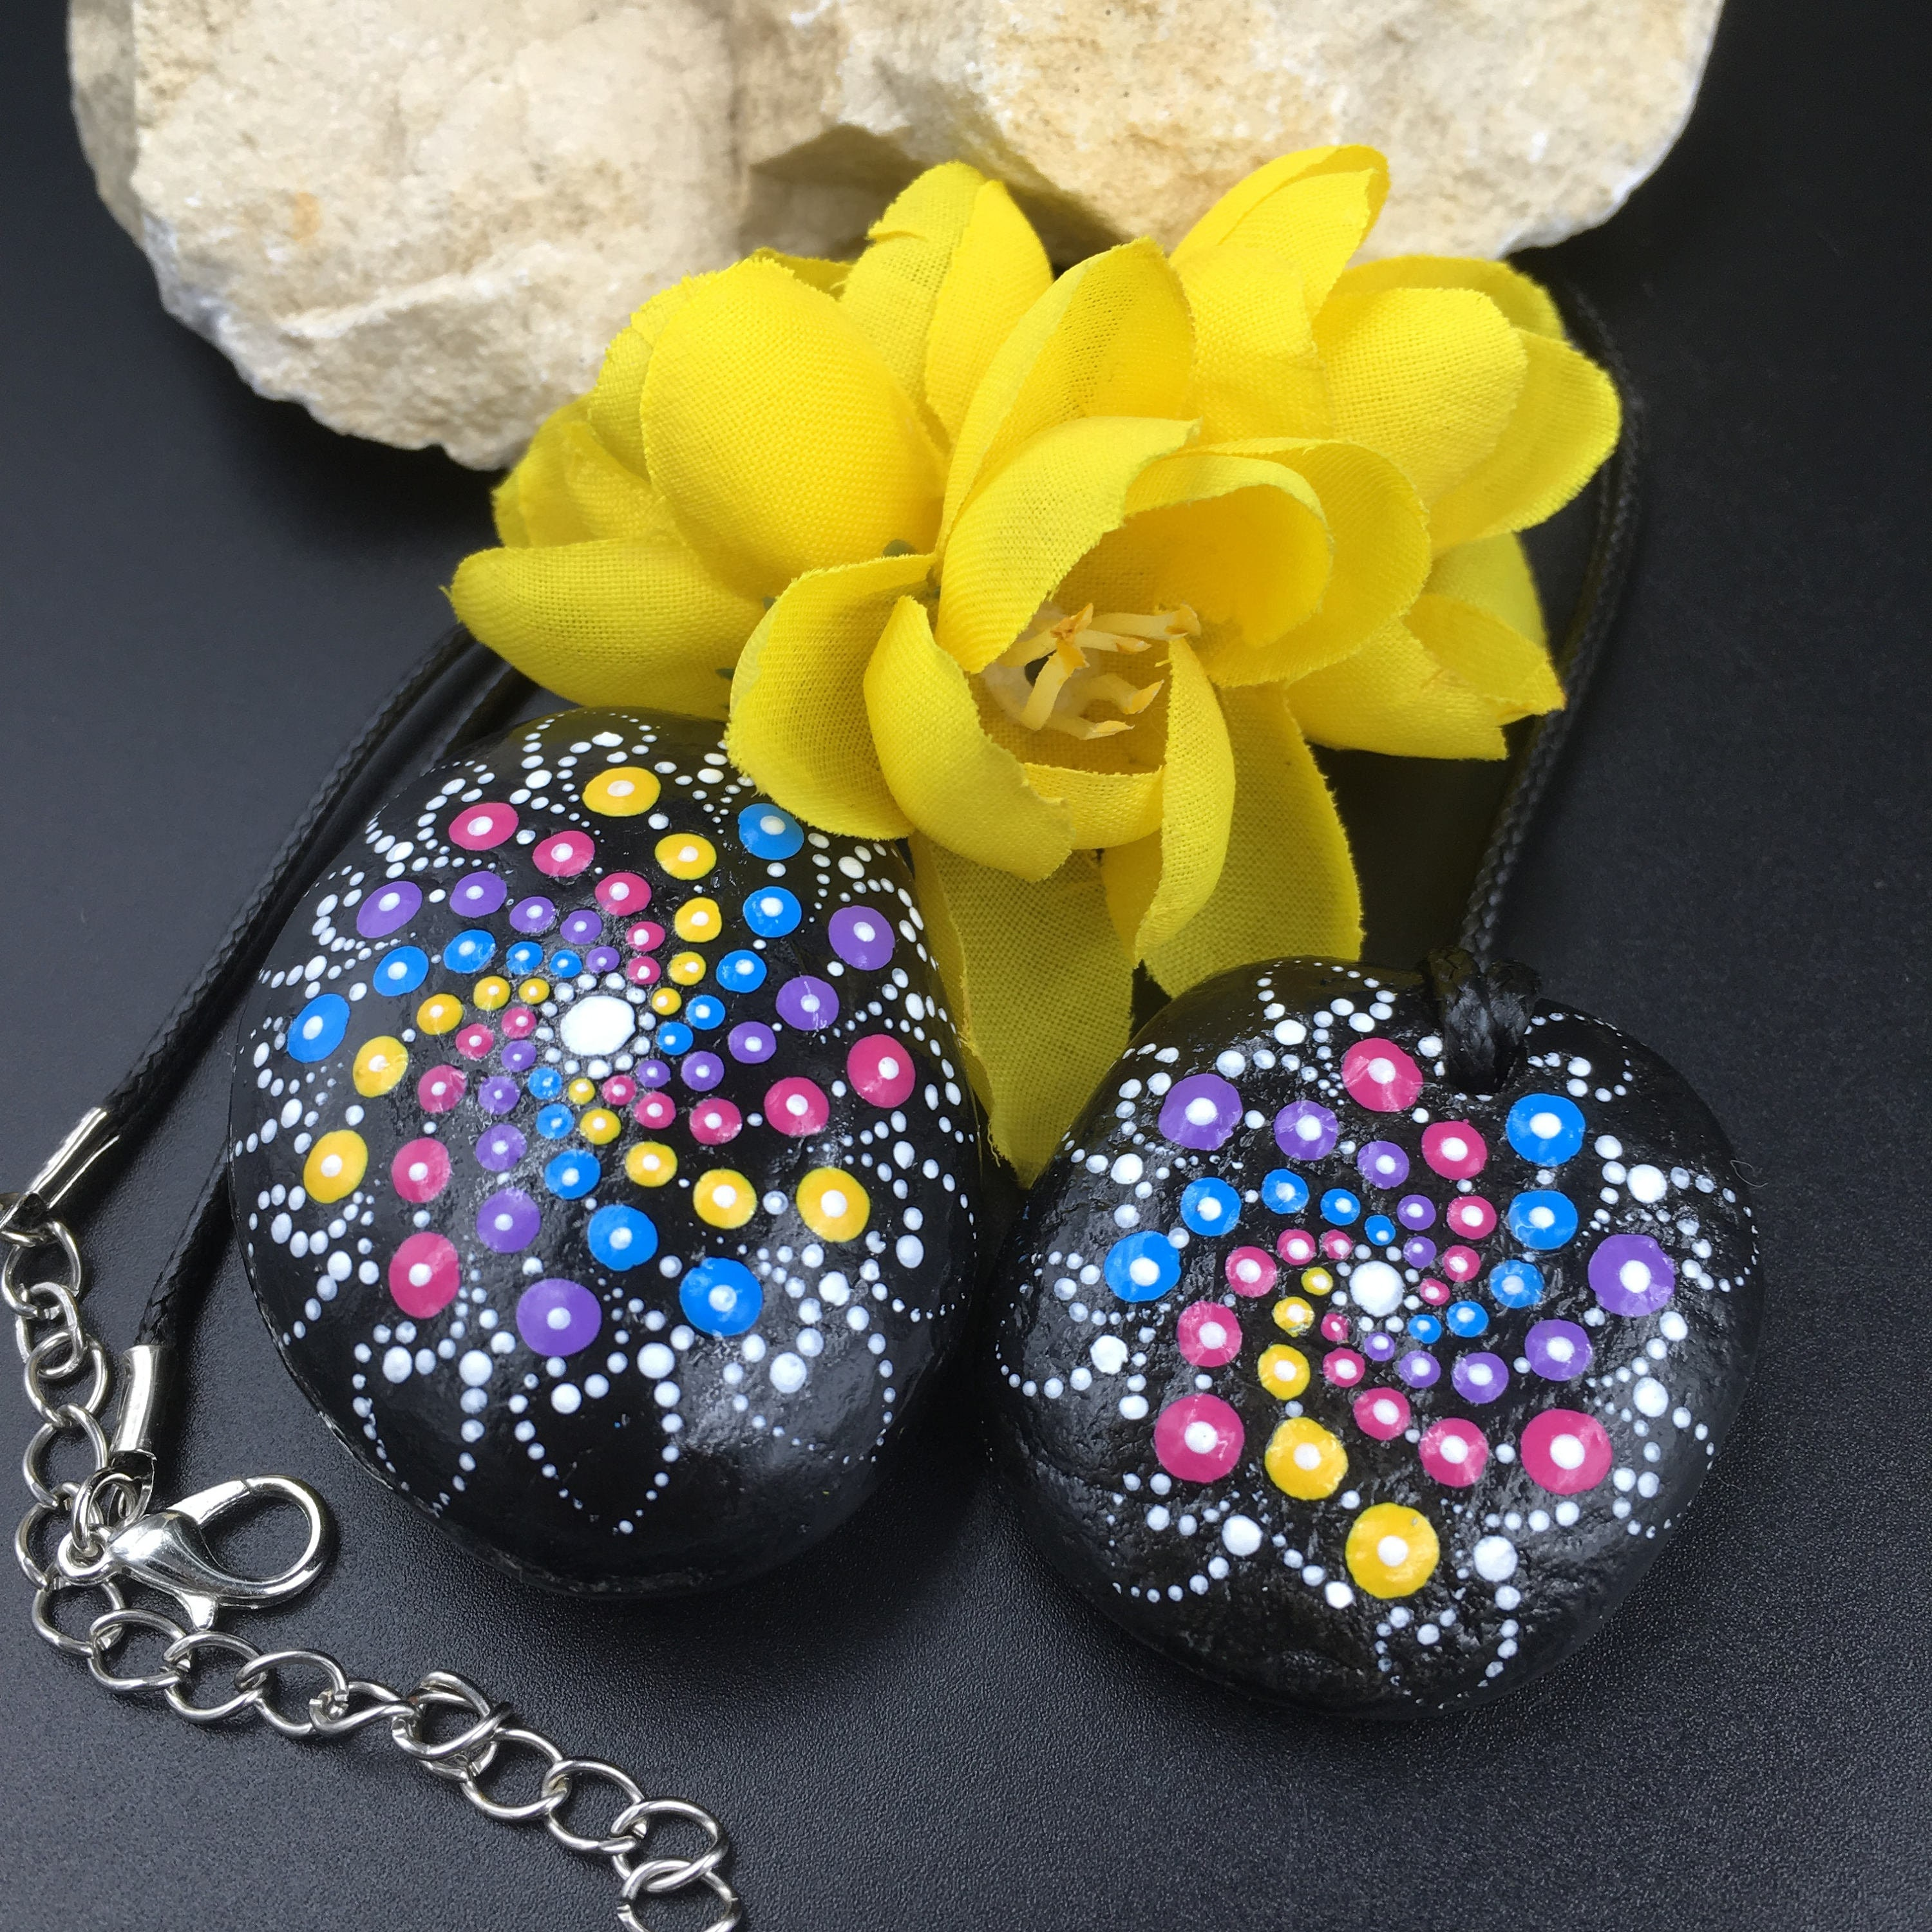 Bohemian Jewellery Tribal Pendant Holiday Gift Idea Unique Set of 2 Dot Painted Rocks and 1 Pendant